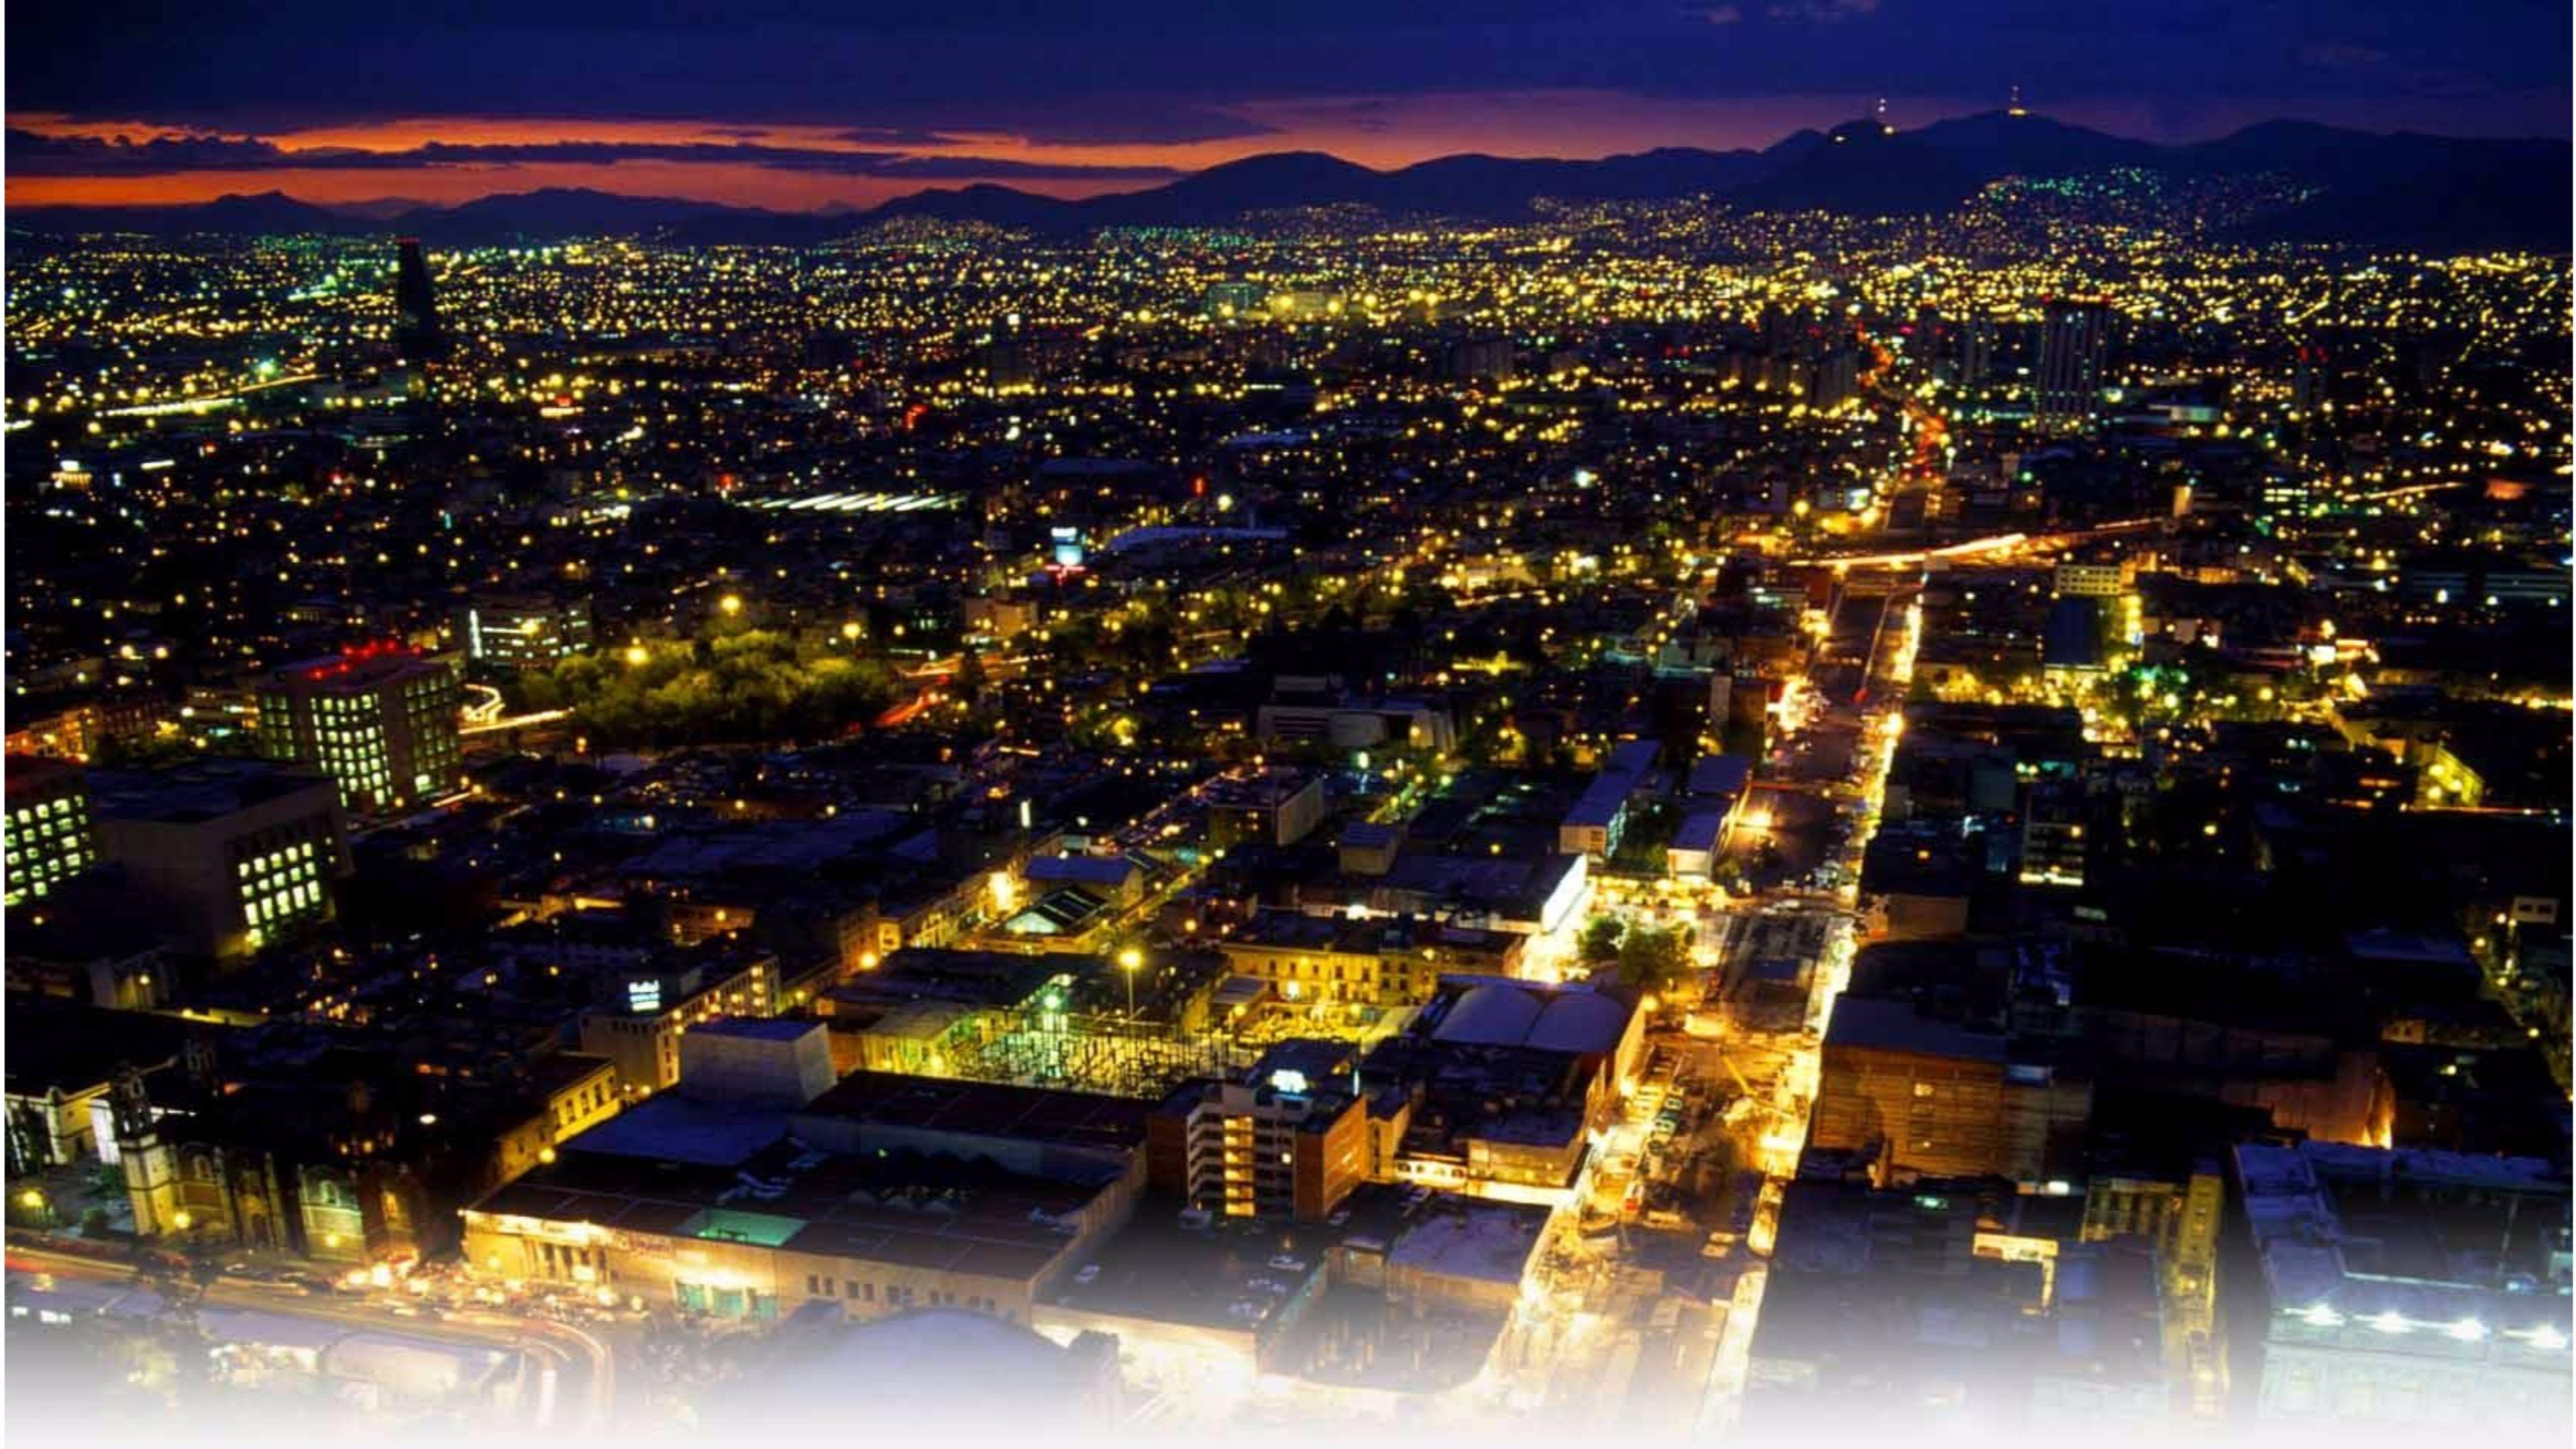 Mexico City Wallpapers, Cool Mexico City Backgrounds | 43 Superb ...